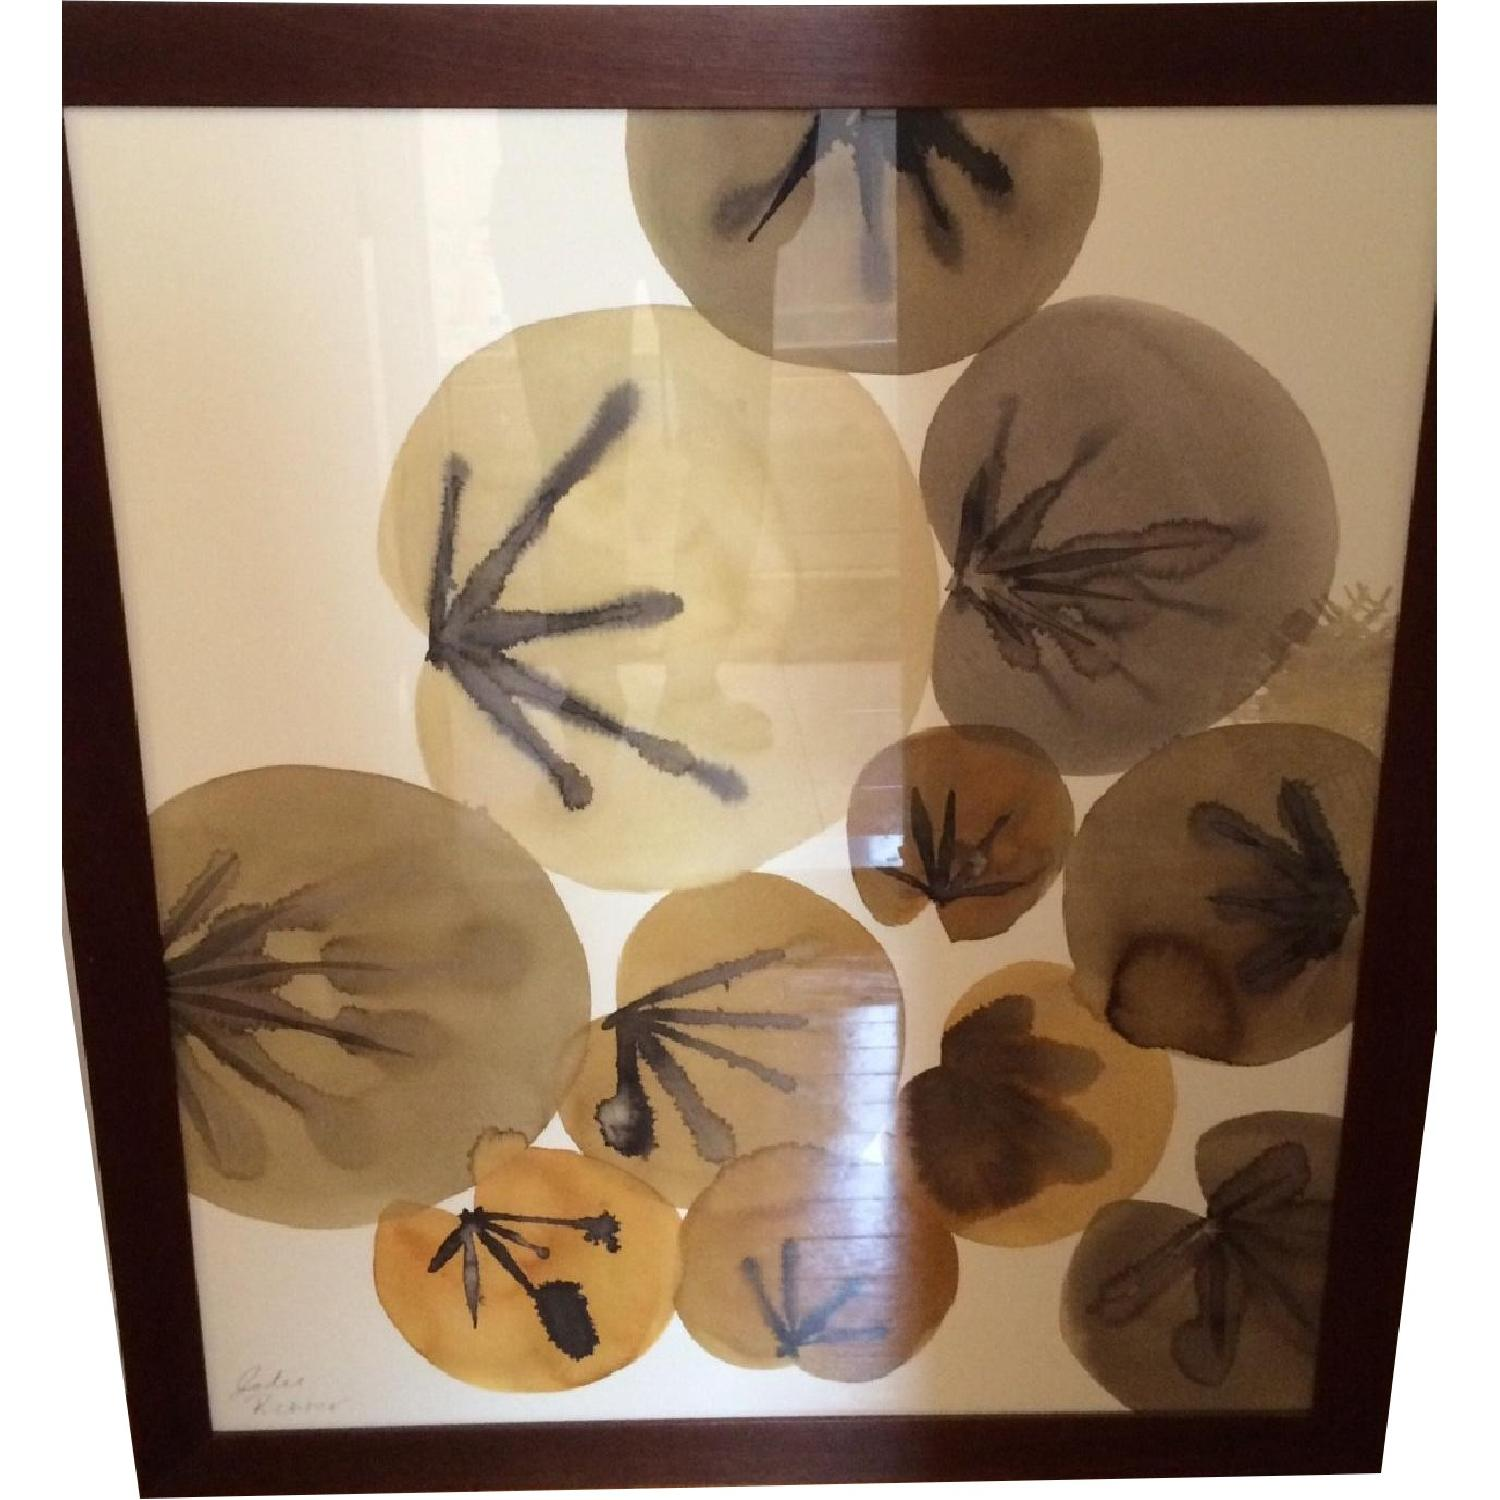 Crate & Barrel Lily Pads Wall Art - image-0